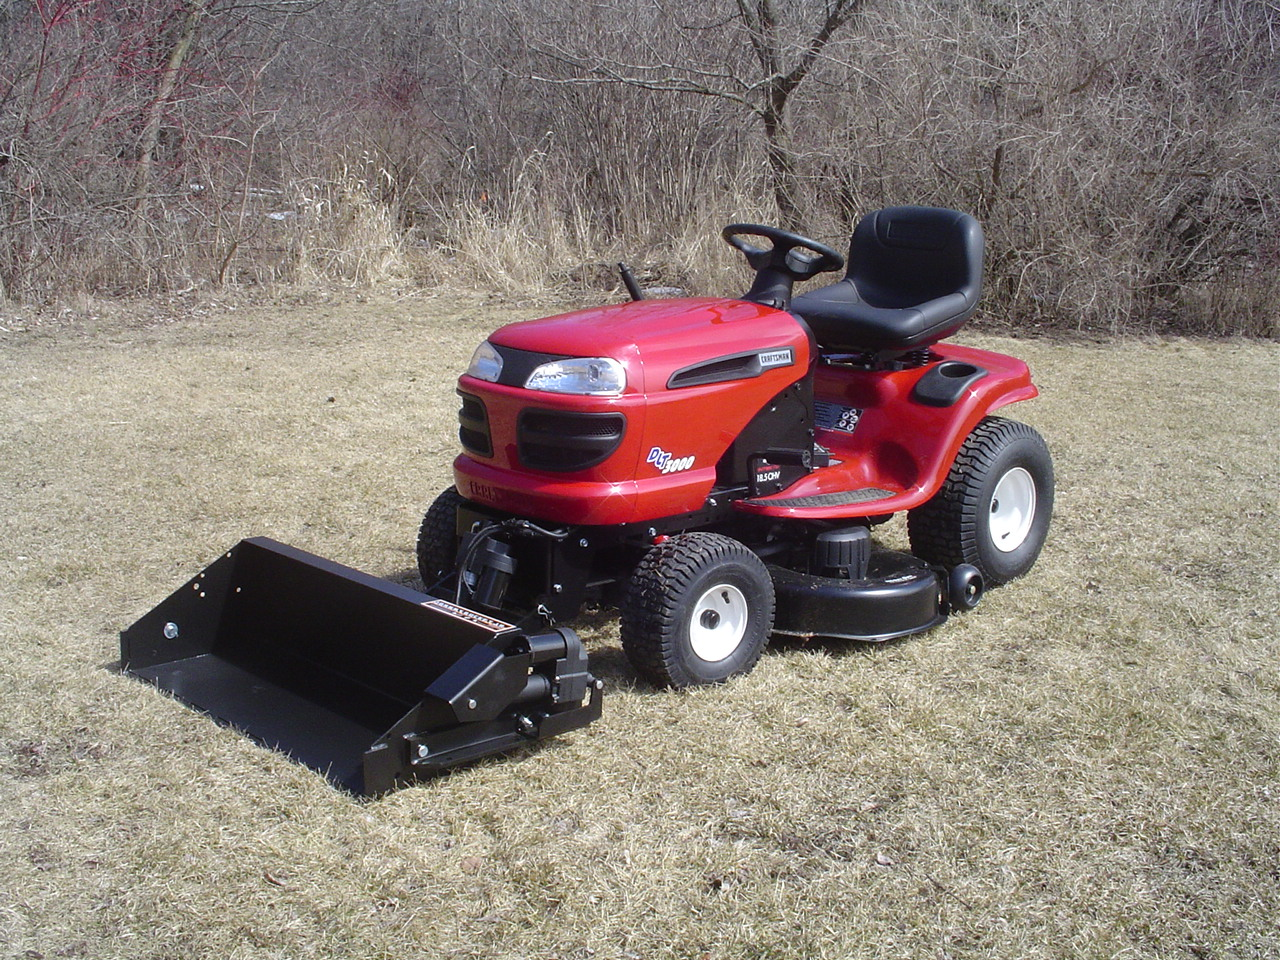 Craftsman Garden Tractor ARMSLIST - For Sale: CRAFTSMAN ...